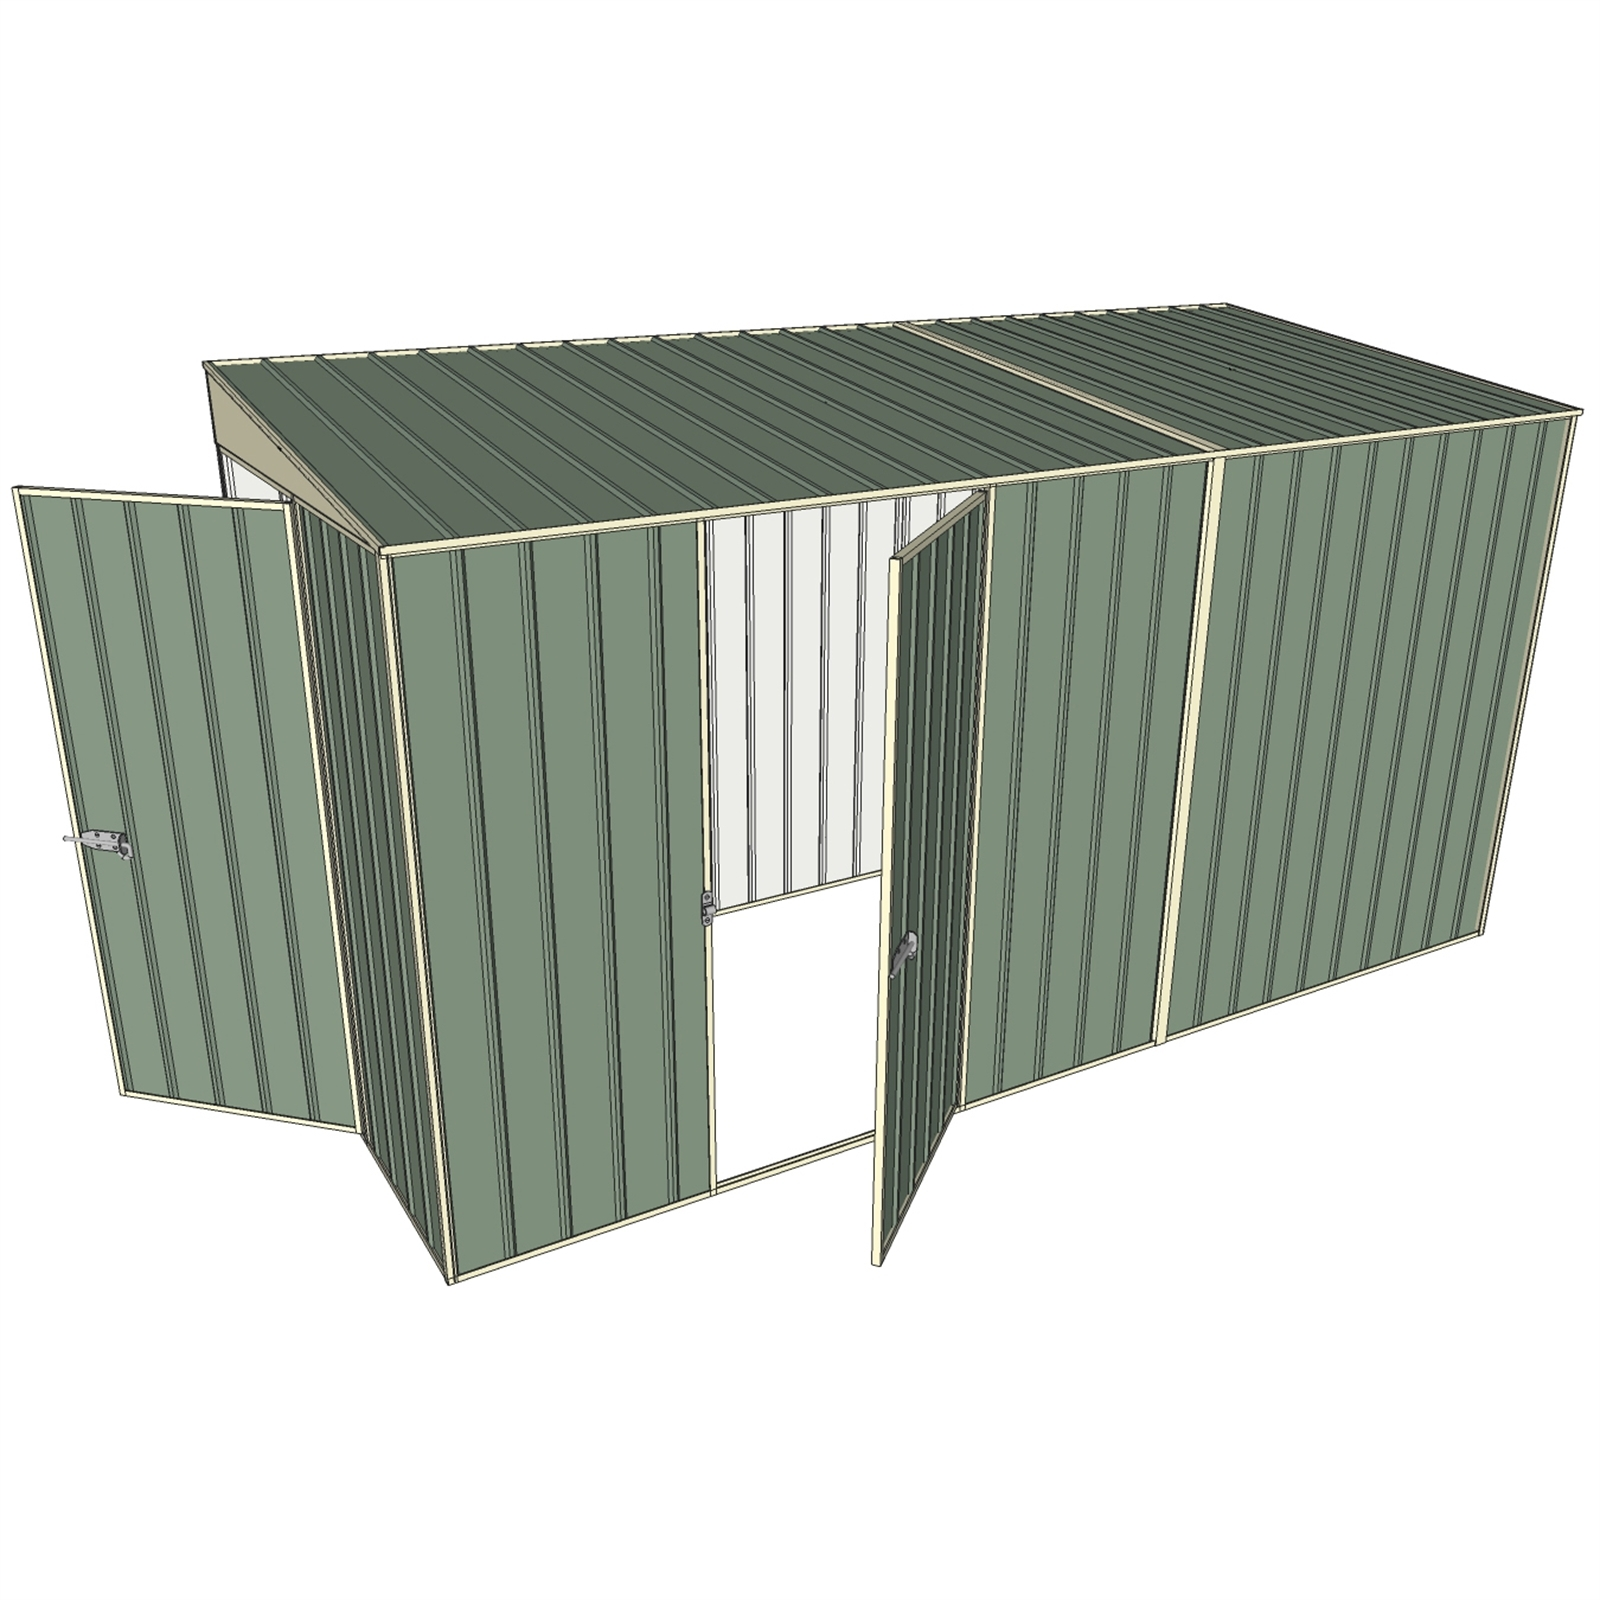 Build-a-Shed 1.5 x 3.7 x 2.0m  Tunnel Shed Tunnel Hinged Door +1 Hinged Side Door - Green